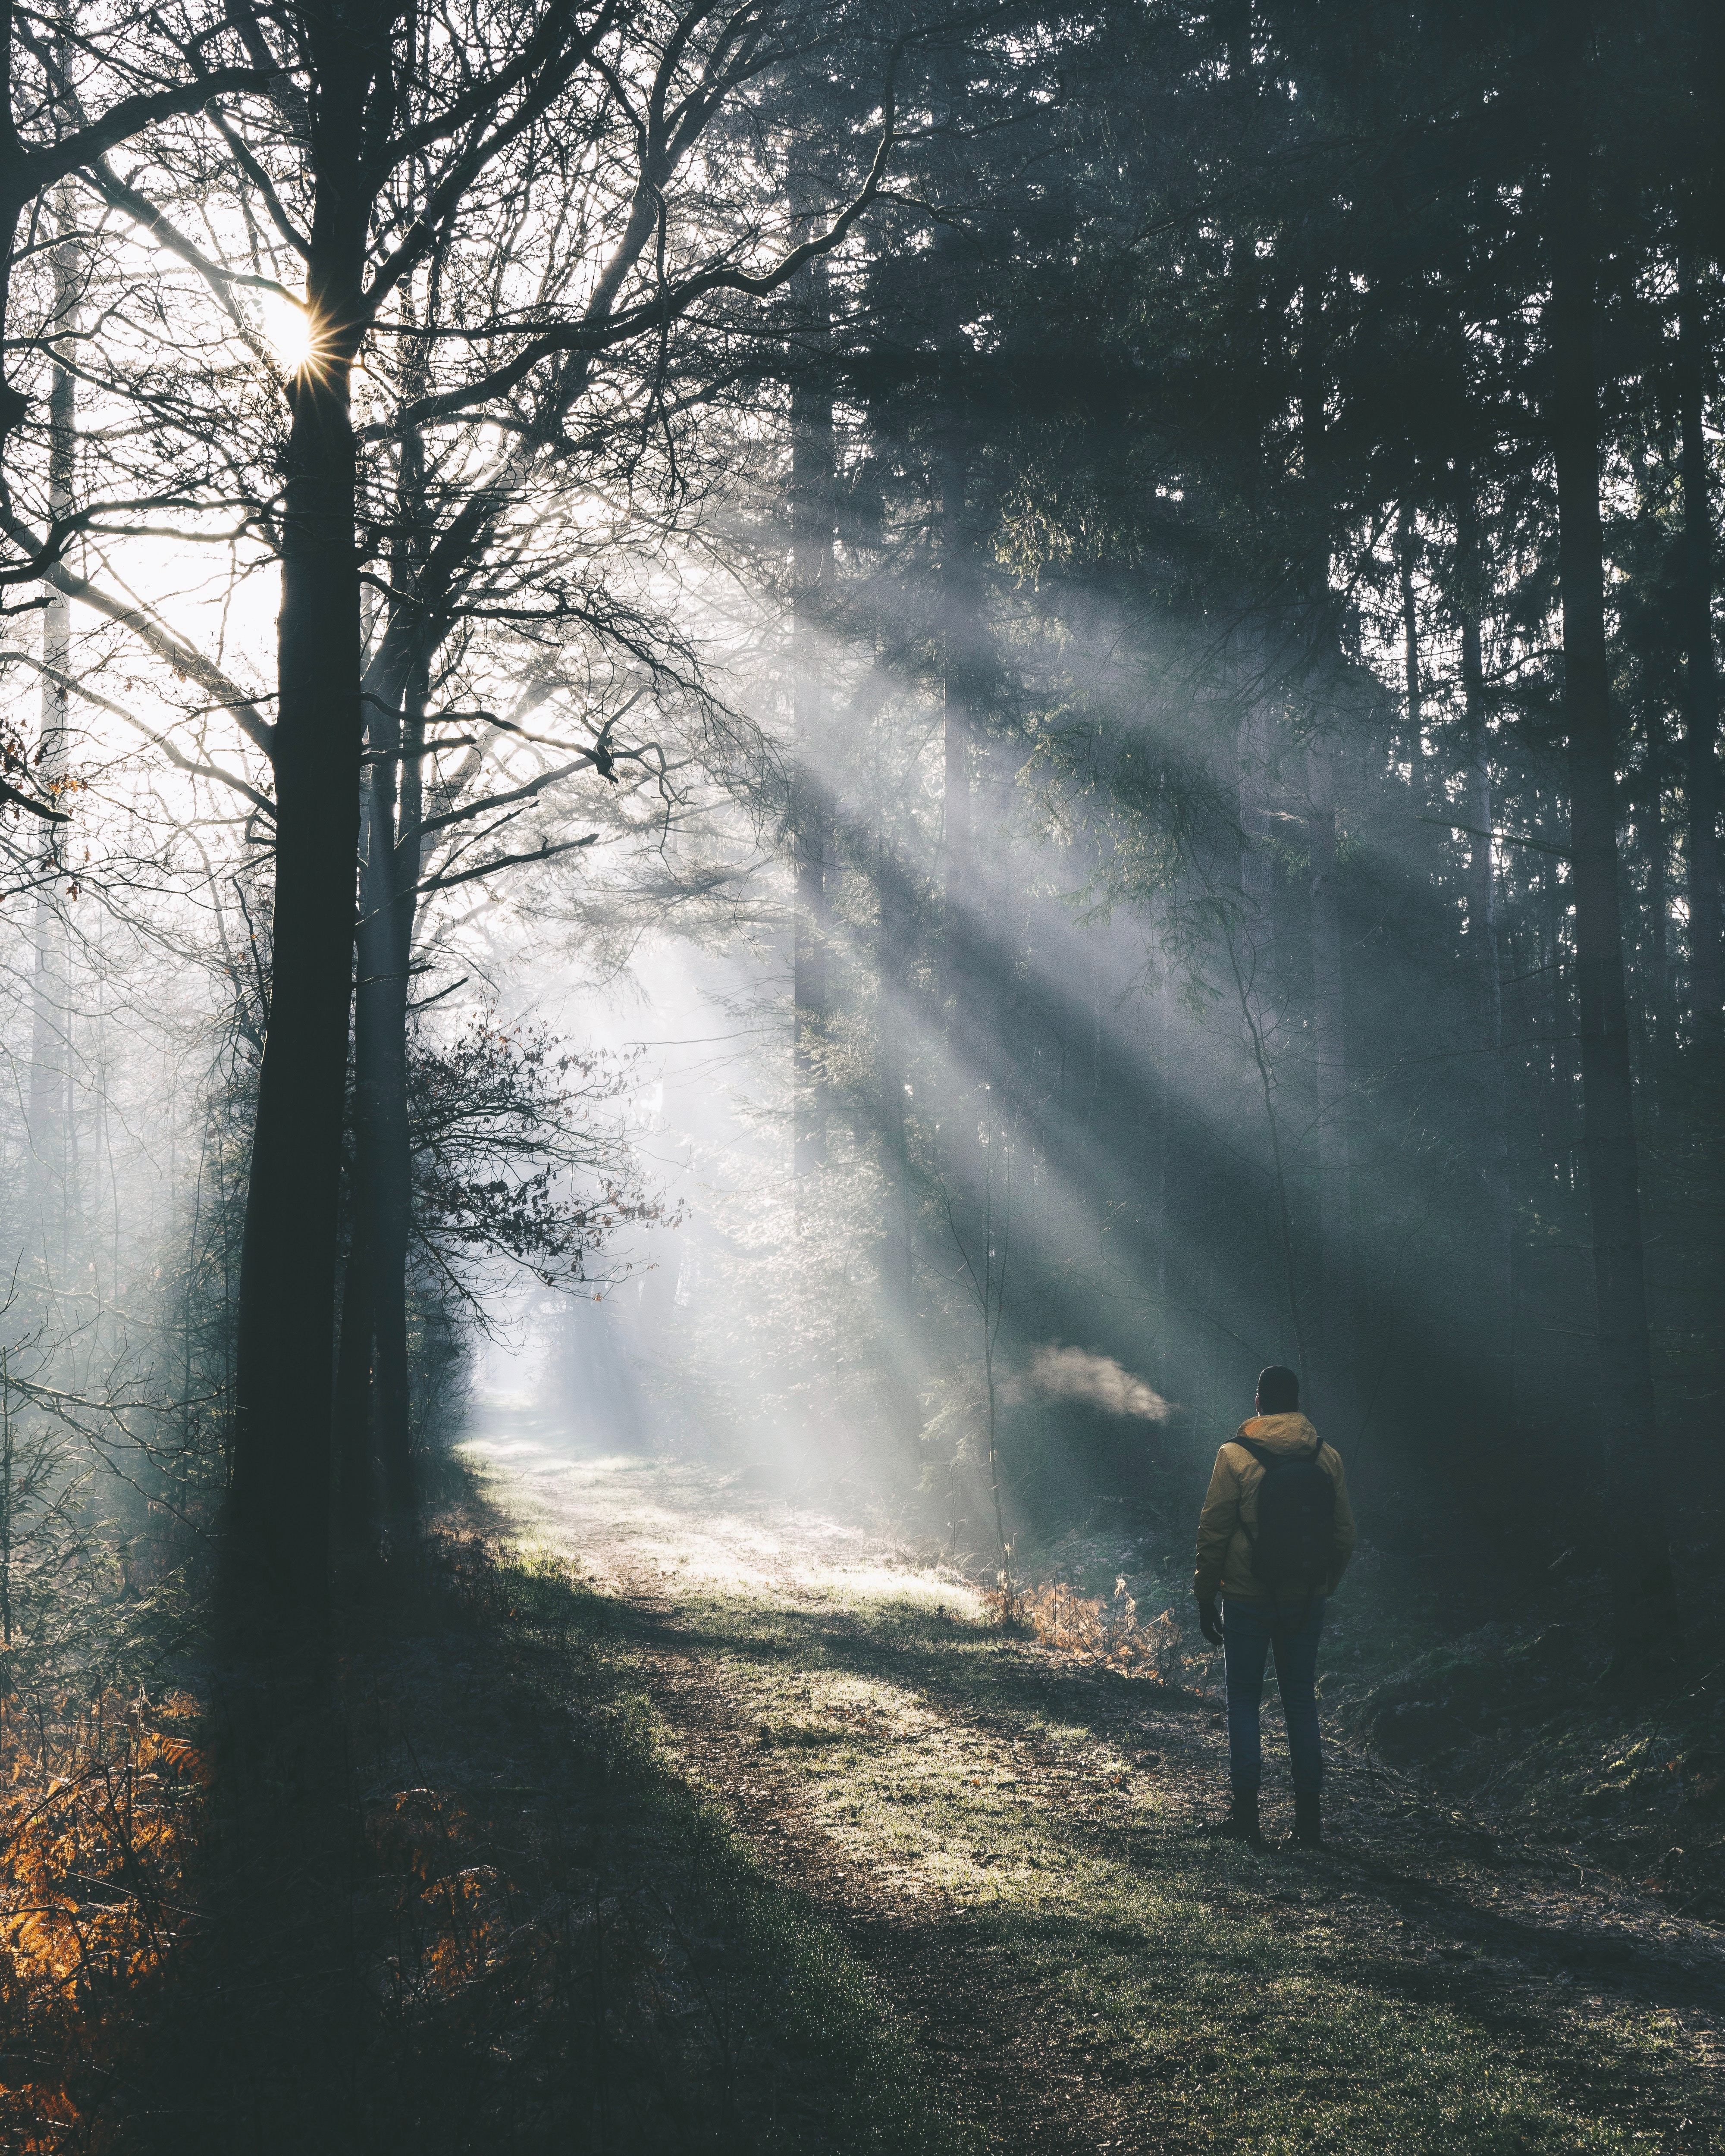 112061 download wallpaper Light, Miscellaneous, Nature, Shine, Miscellanea, Forest, Fog, Human, Person, Sunny, Solar screensavers and pictures for free